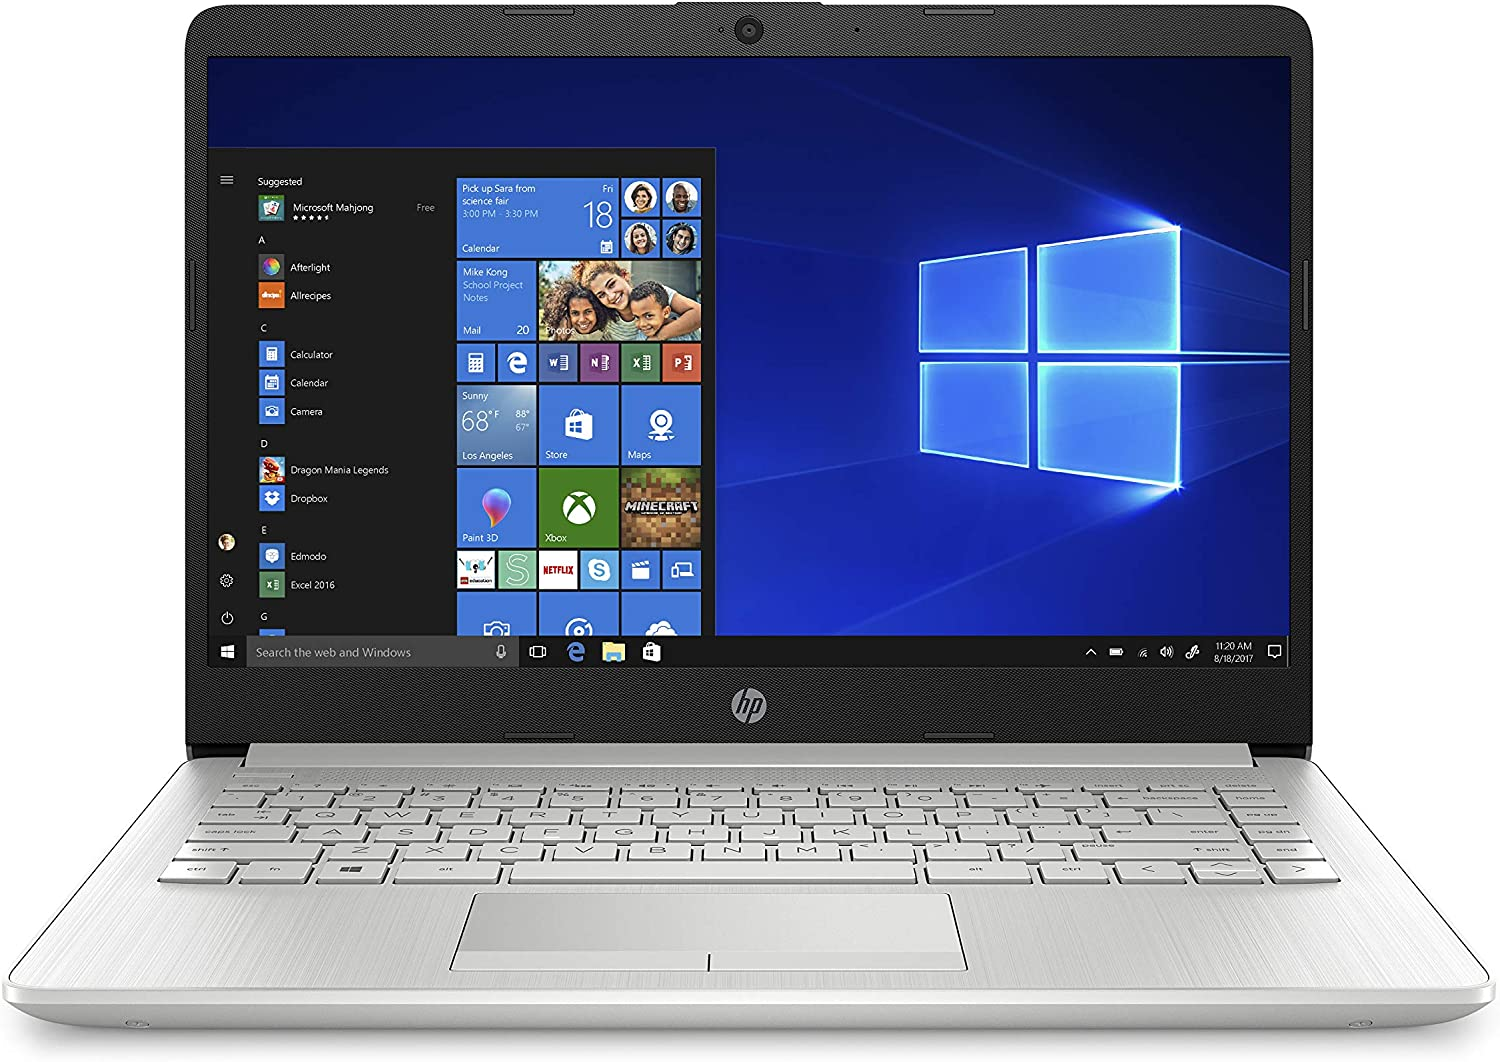 hp laptop with 16GB RAM